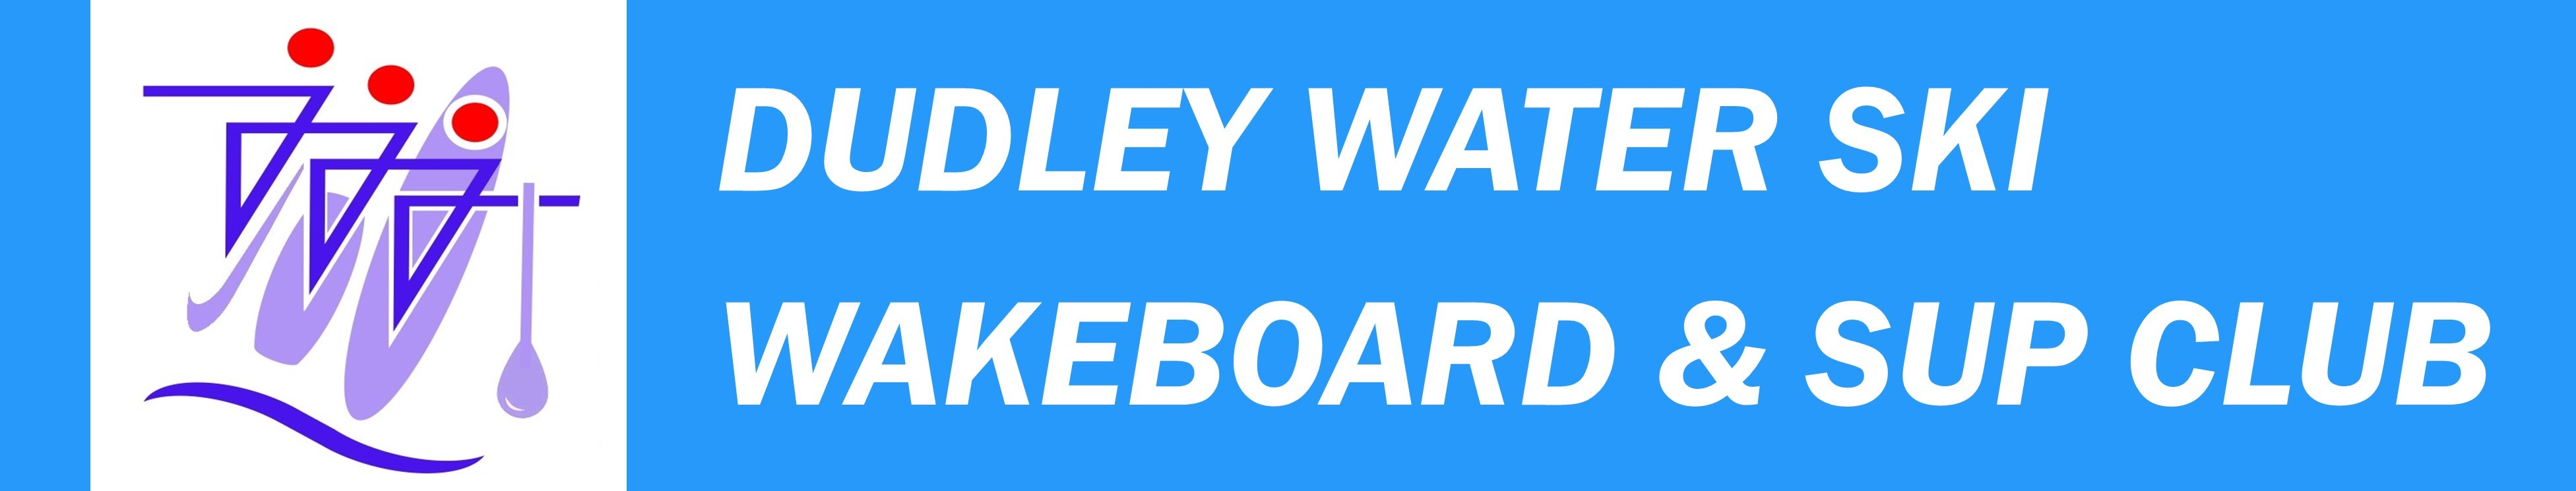 Dudley Water Ski, Wakeboard and SUP Club